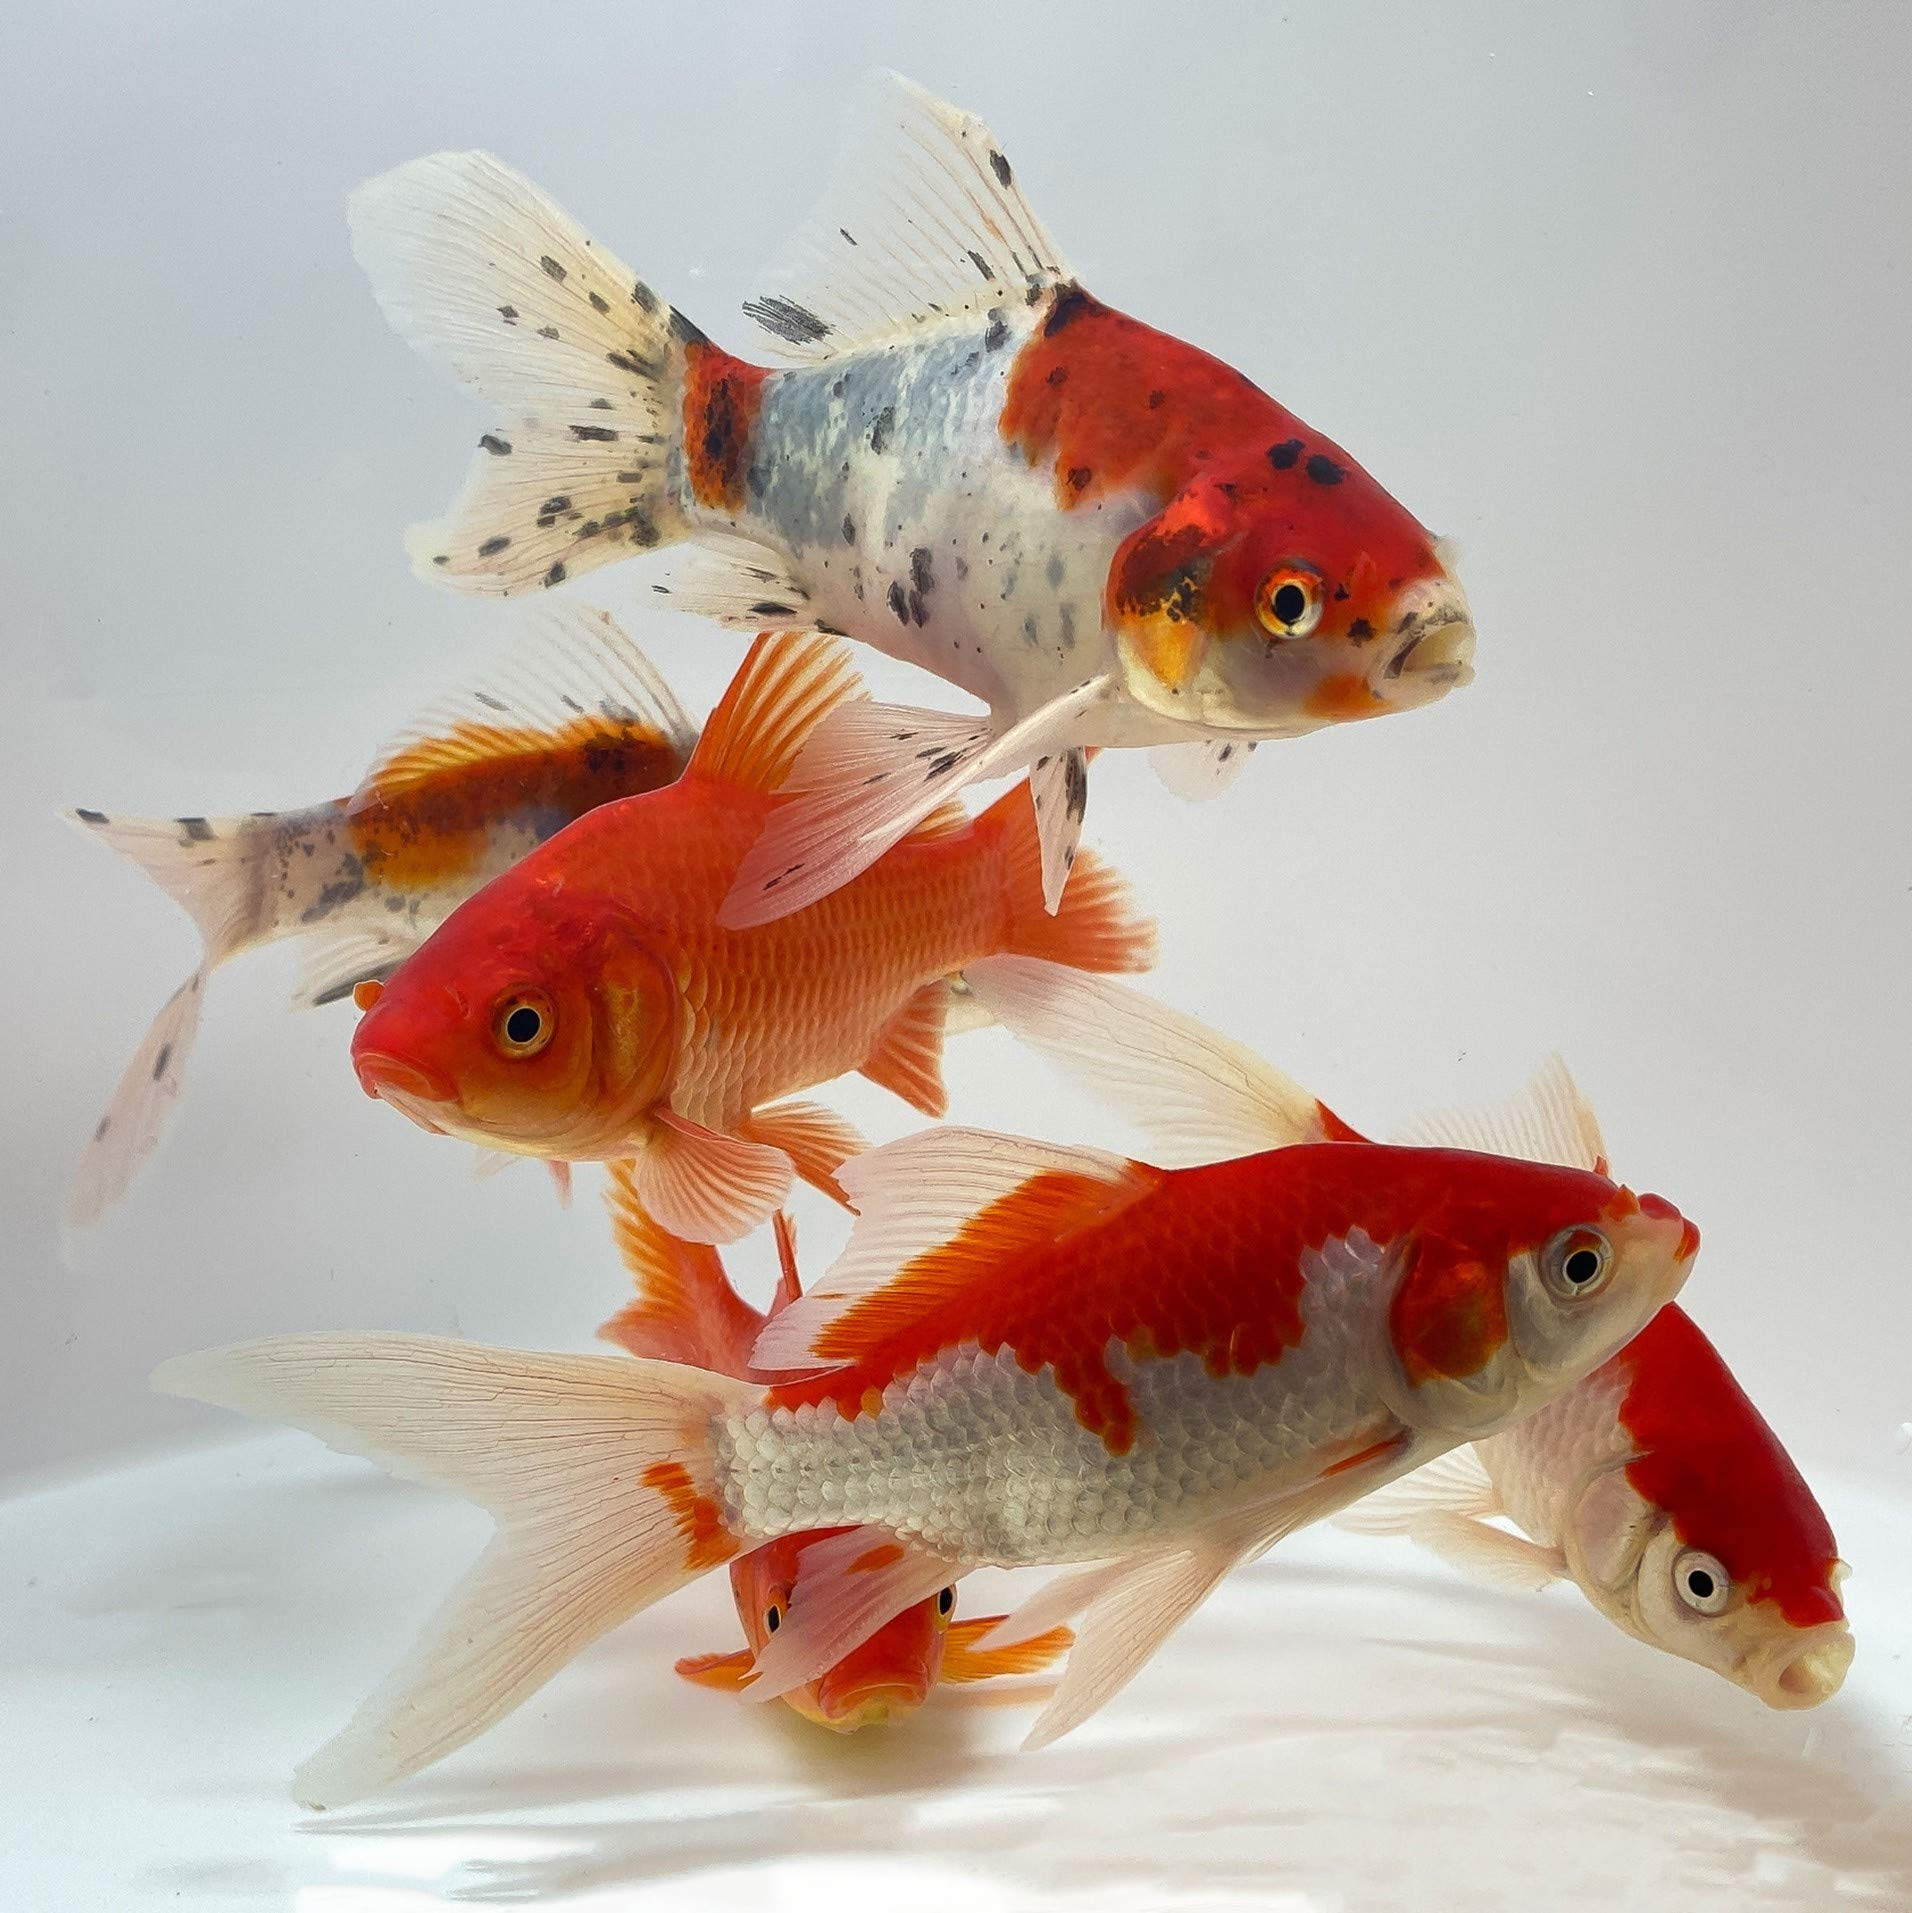 Live Butterfly Fin Koi for Garden Pond Goldfish Aquarium or Tank Live Butterfly Fin Koi Live Arrival Guarantee Born and Raised in The USA